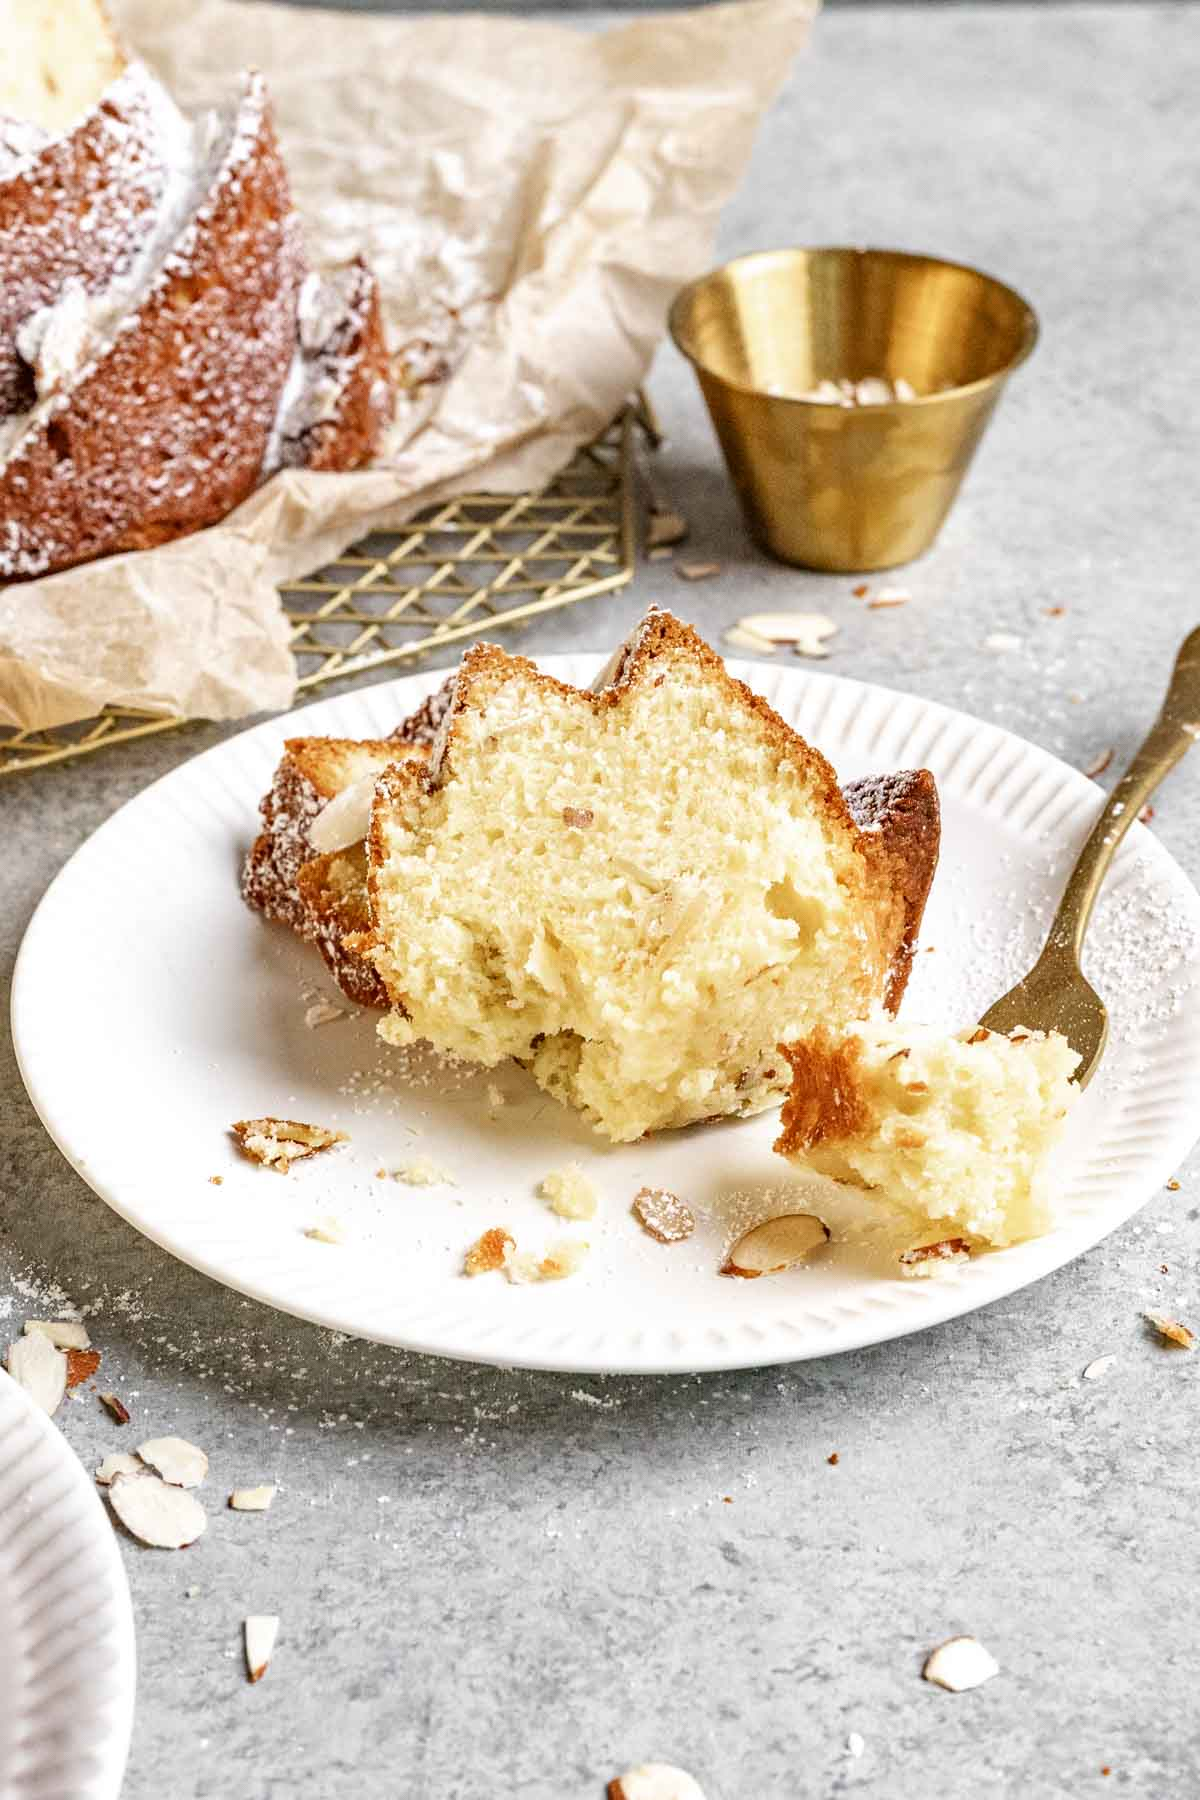 Almond Bundt Cake dusted with powdered sugar sliced on plate